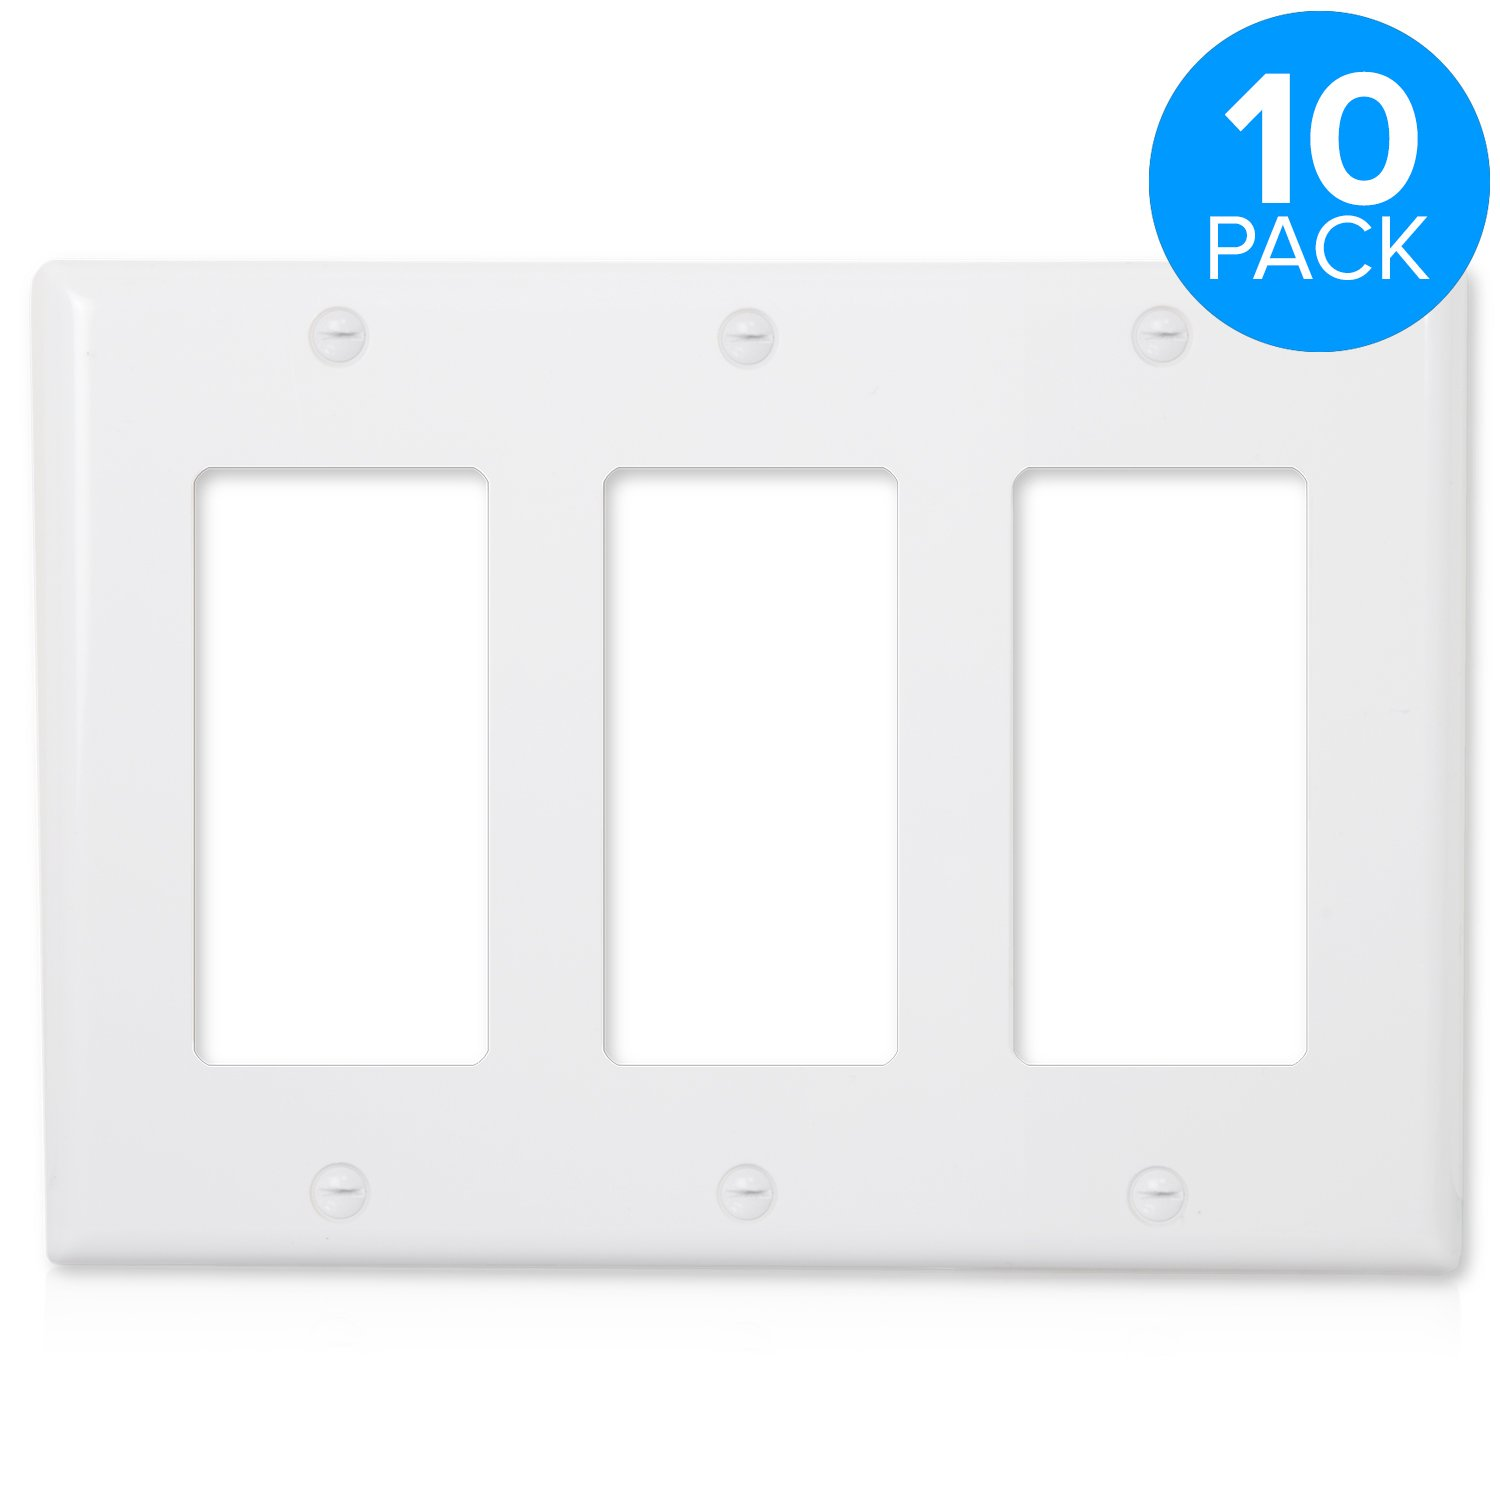 Maxxima 3 Gang Decorative Outlet Wall Plate, White, Standard Size (Pack of 10)